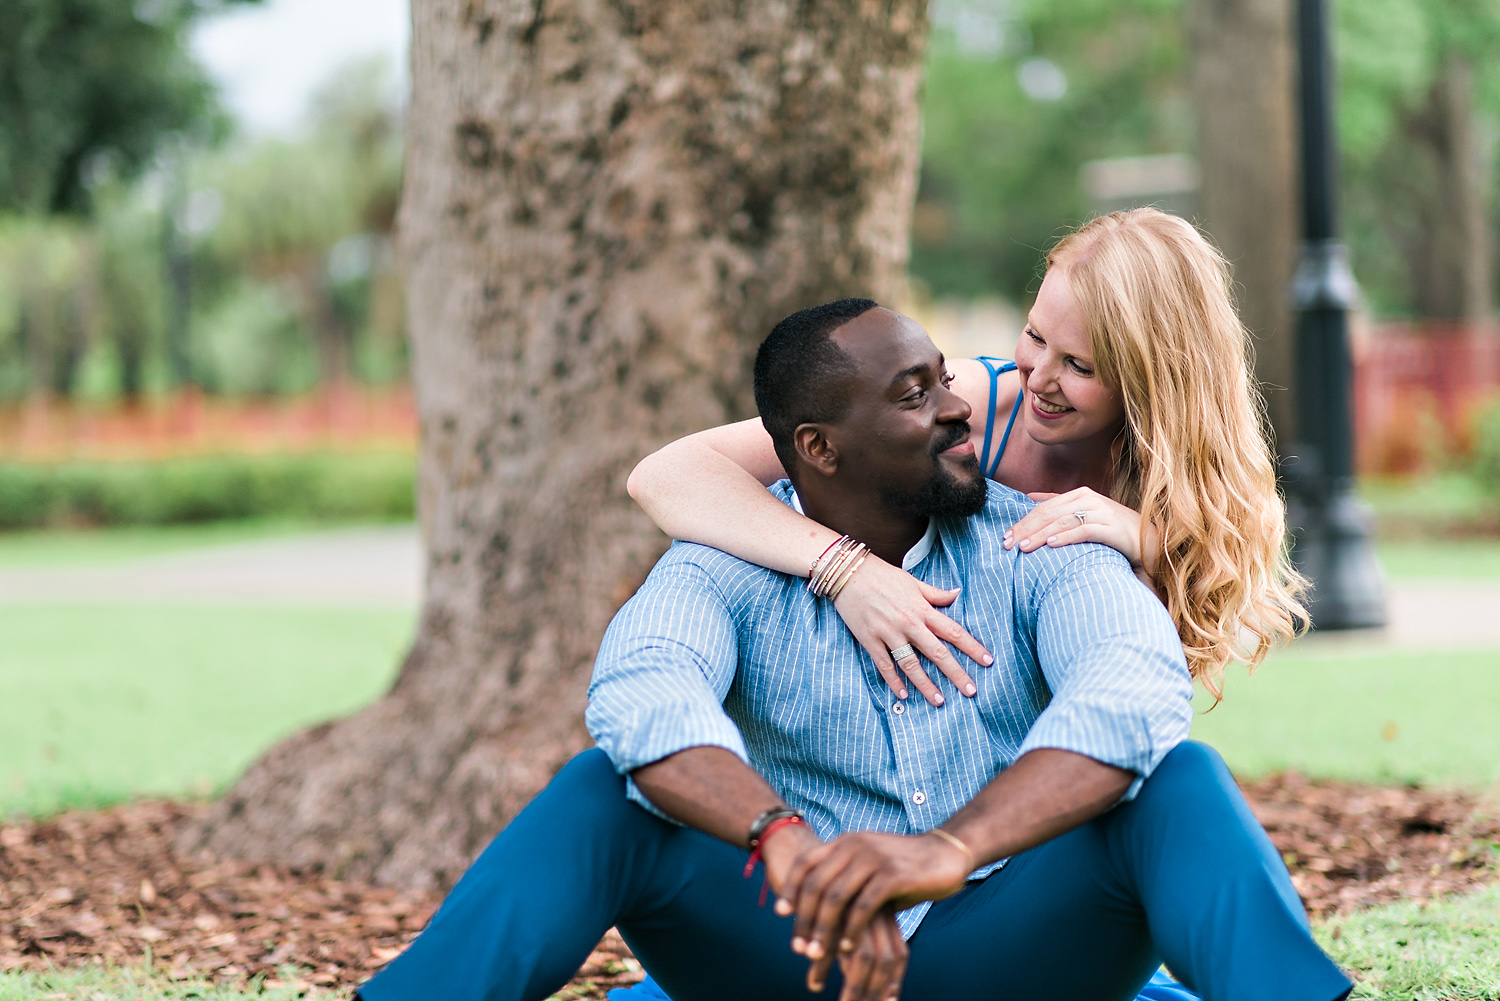 orlando engagement photographer-4.jpg